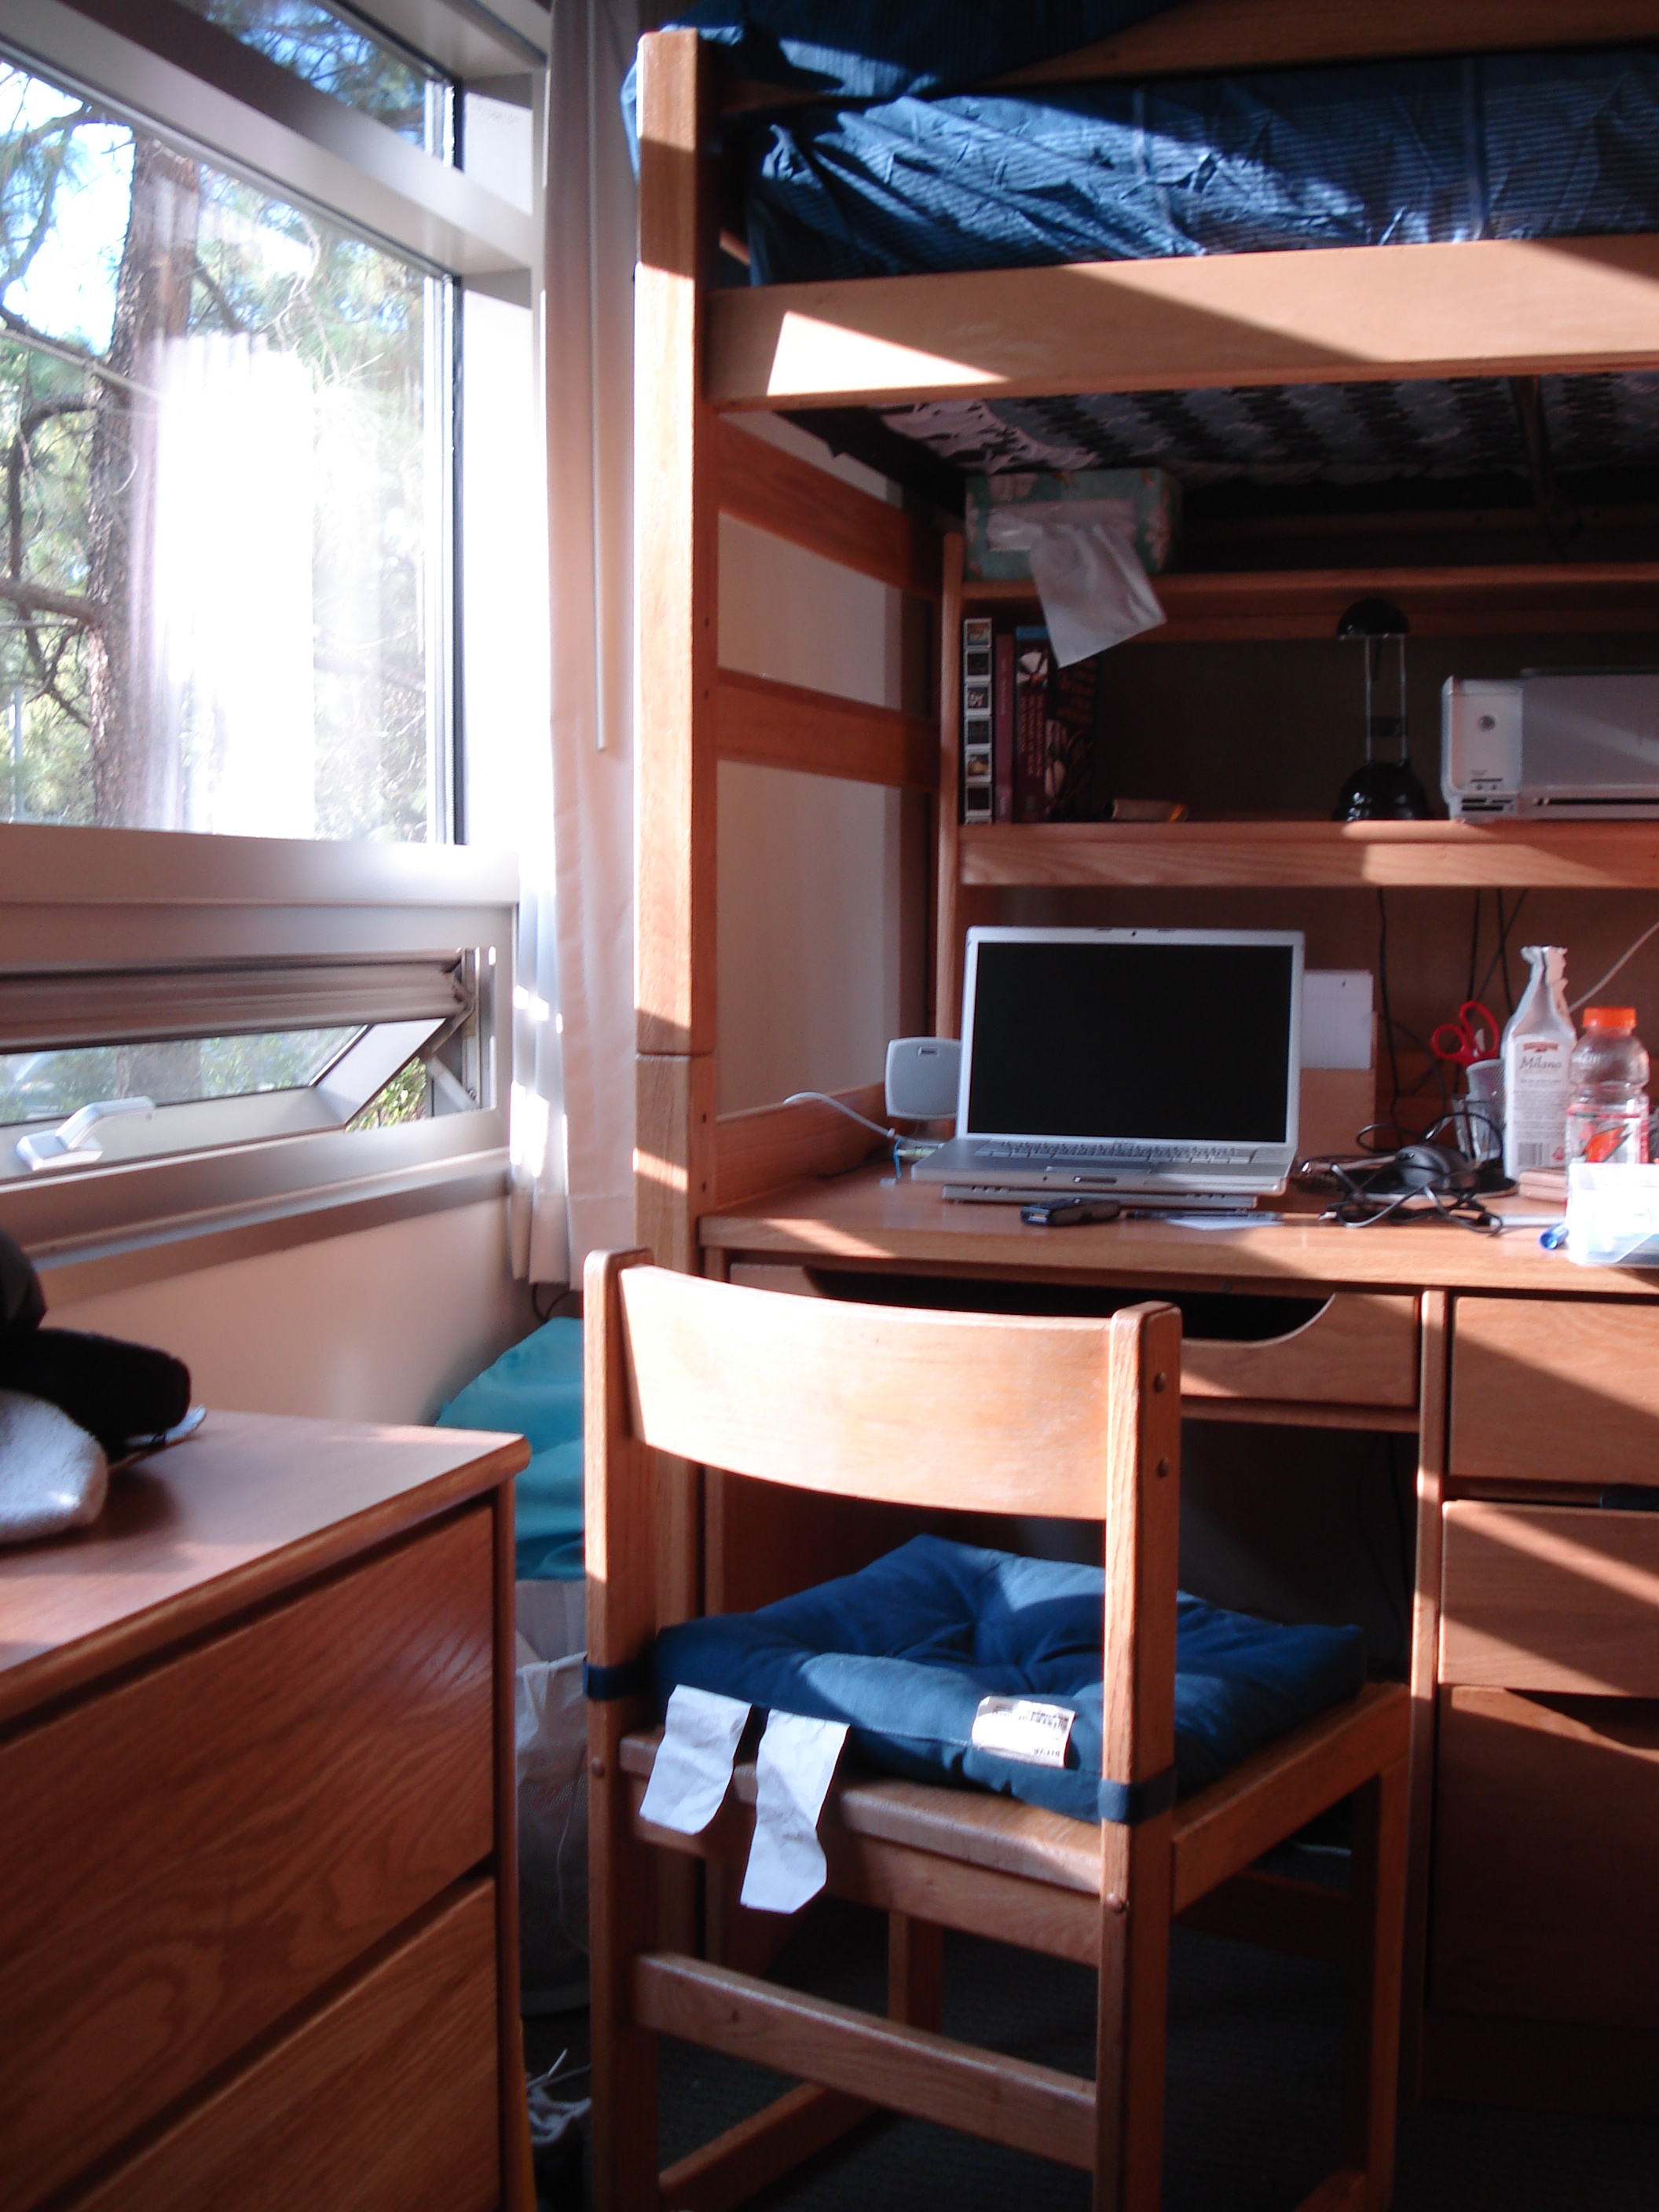 File:UCLA Dorm Room.JPG Part 33